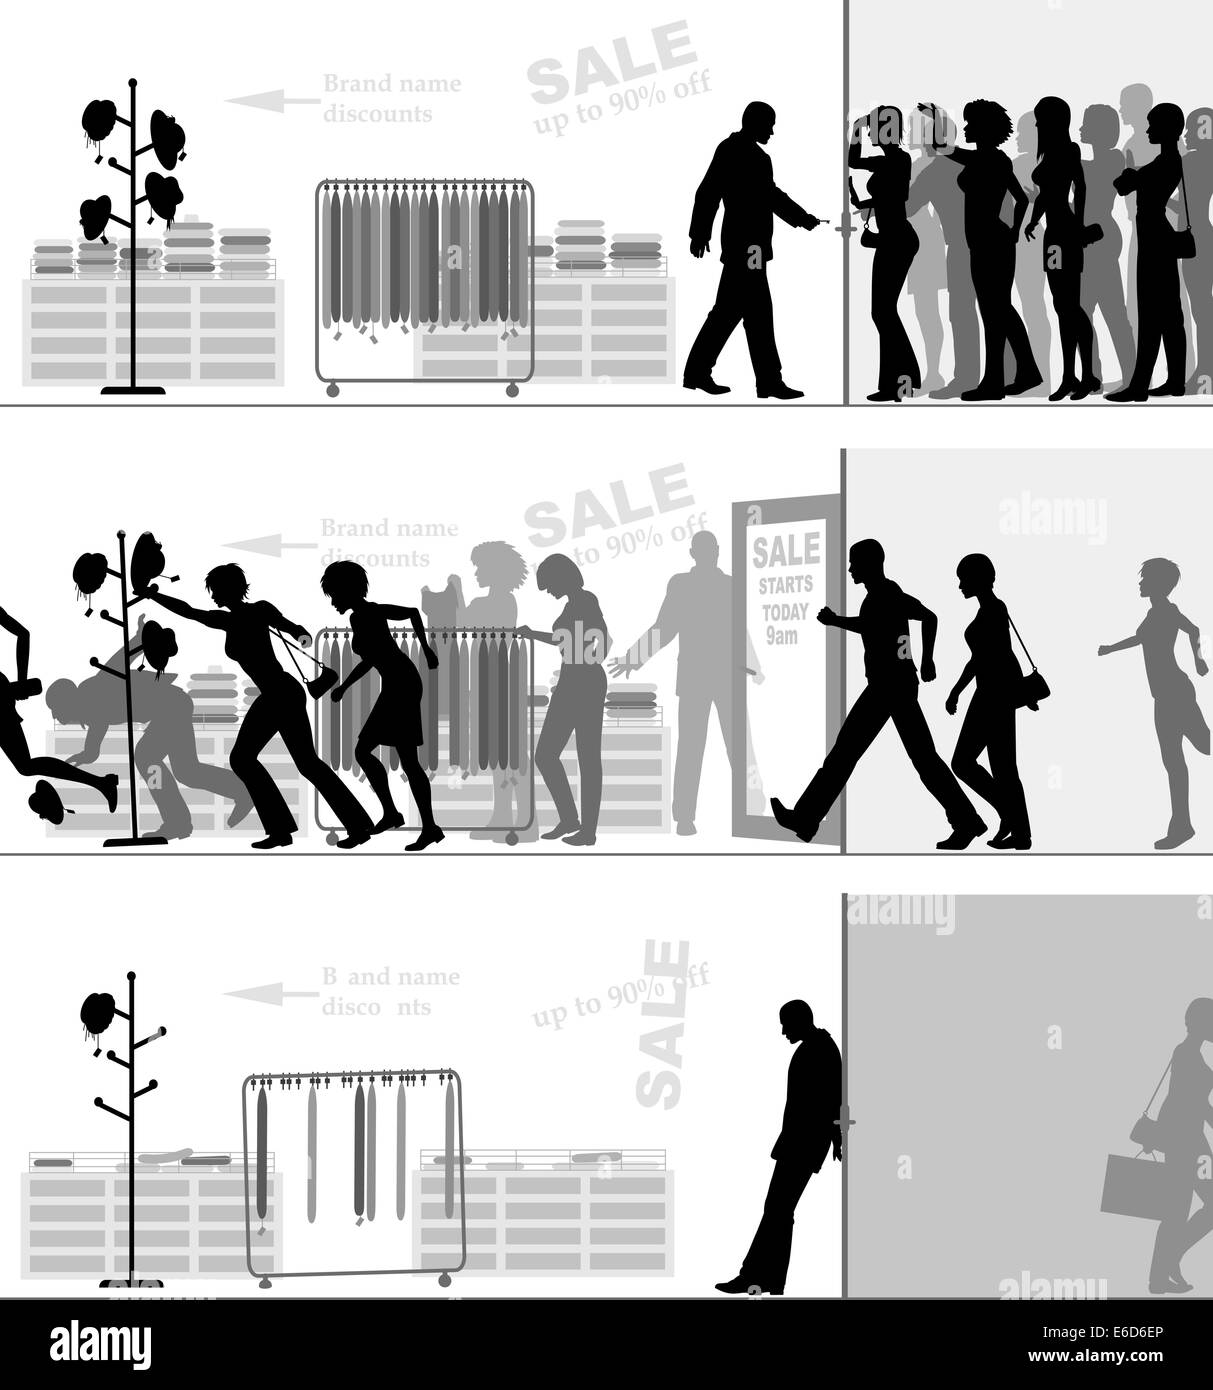 Editable vector illustrated sequence of a sale at a store - Stock Vector